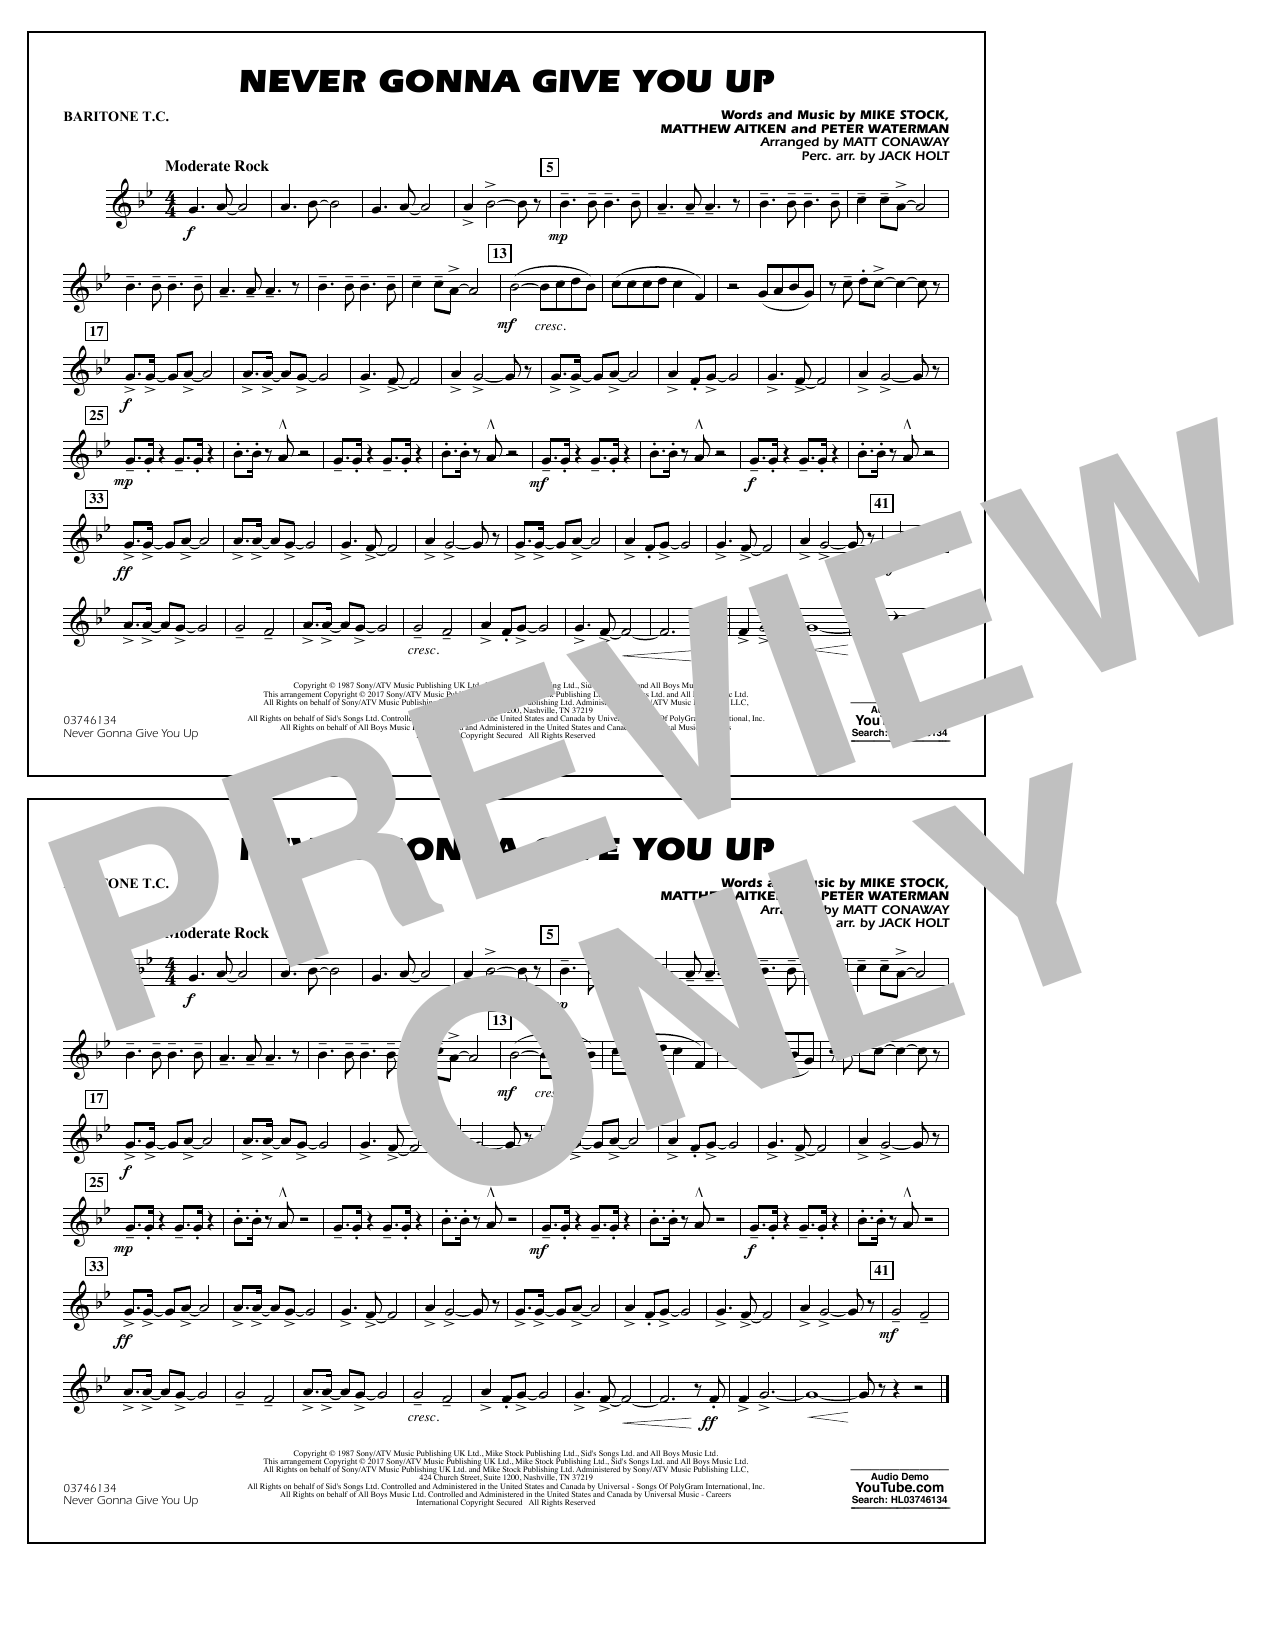 Never Gonna Give You Up - Baritone T.C. Sheet Music